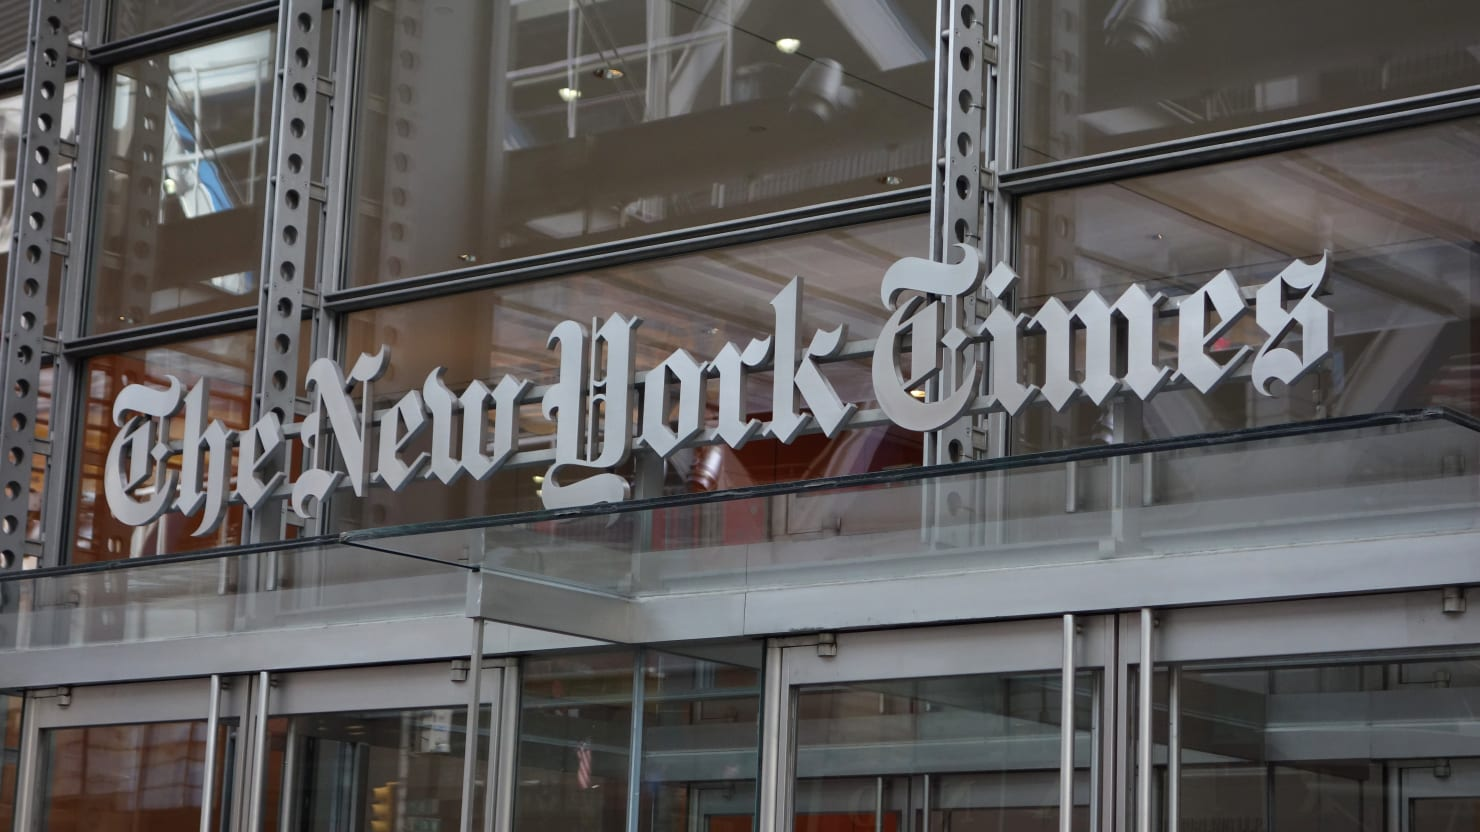 NY Times Assistant Who Edited Cotton's 'Send in the Troops' Column Resigns